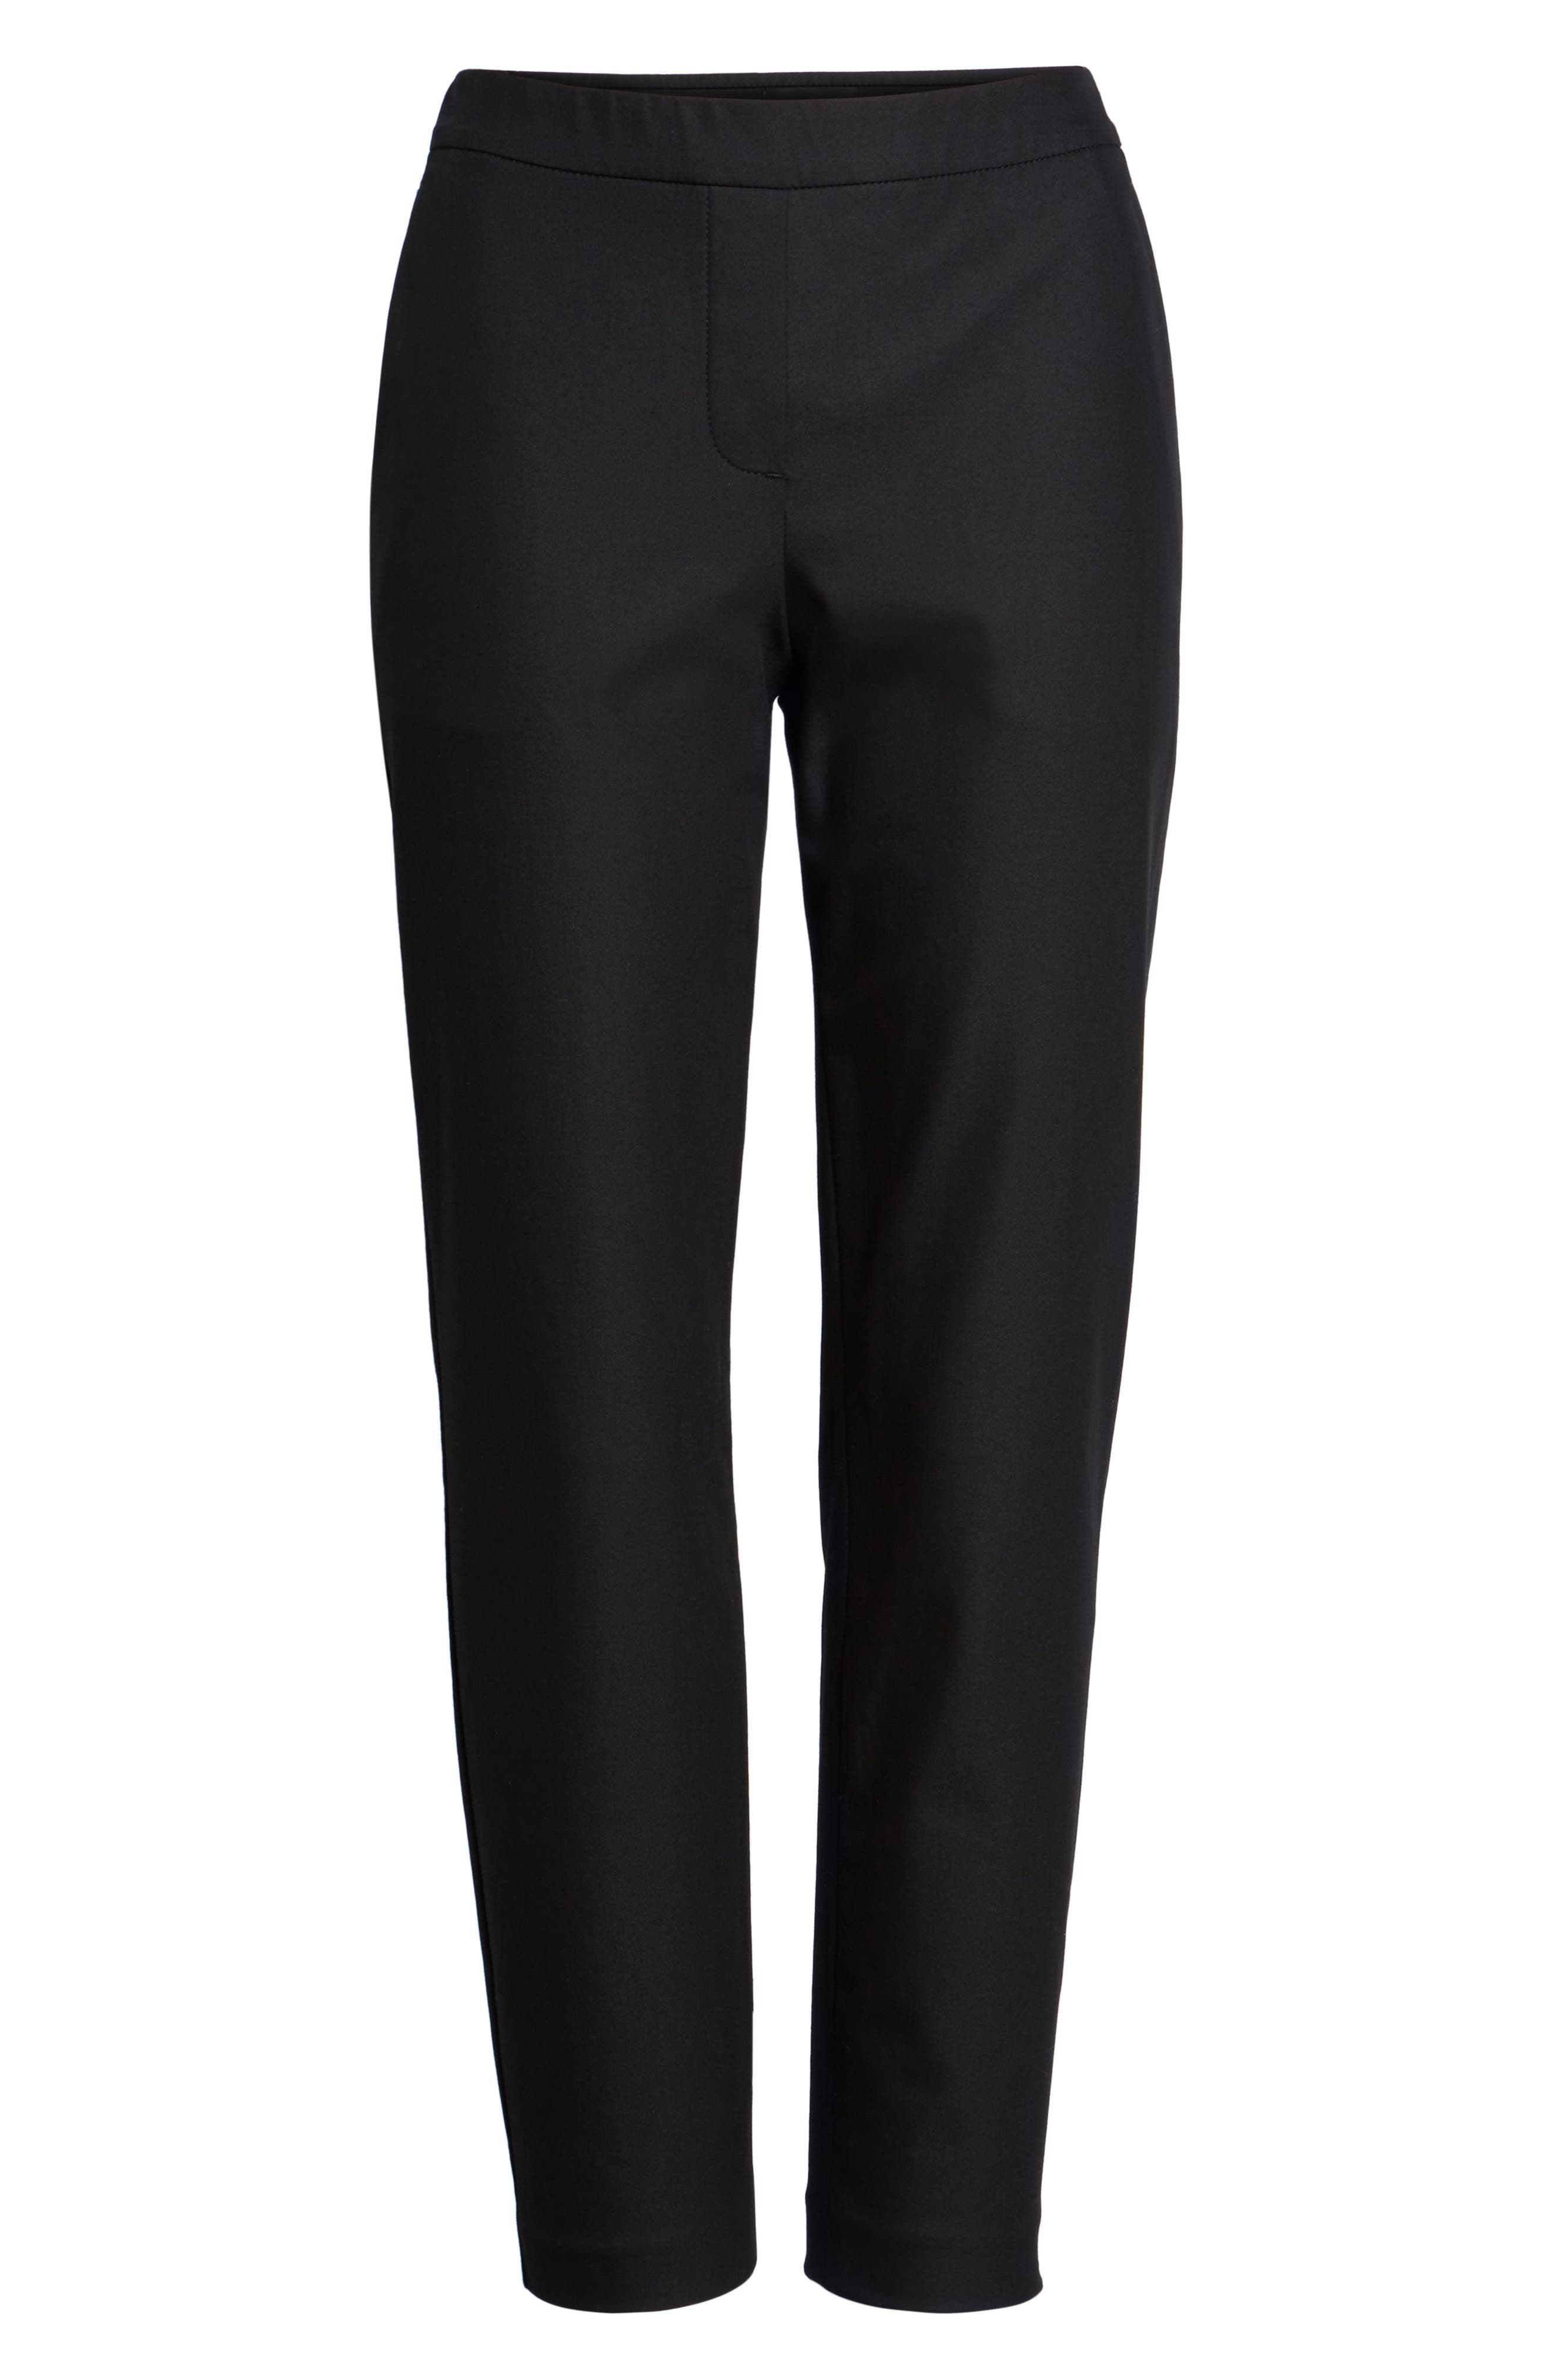 'Thaniel' Trousers,                         Main,                         color, Black